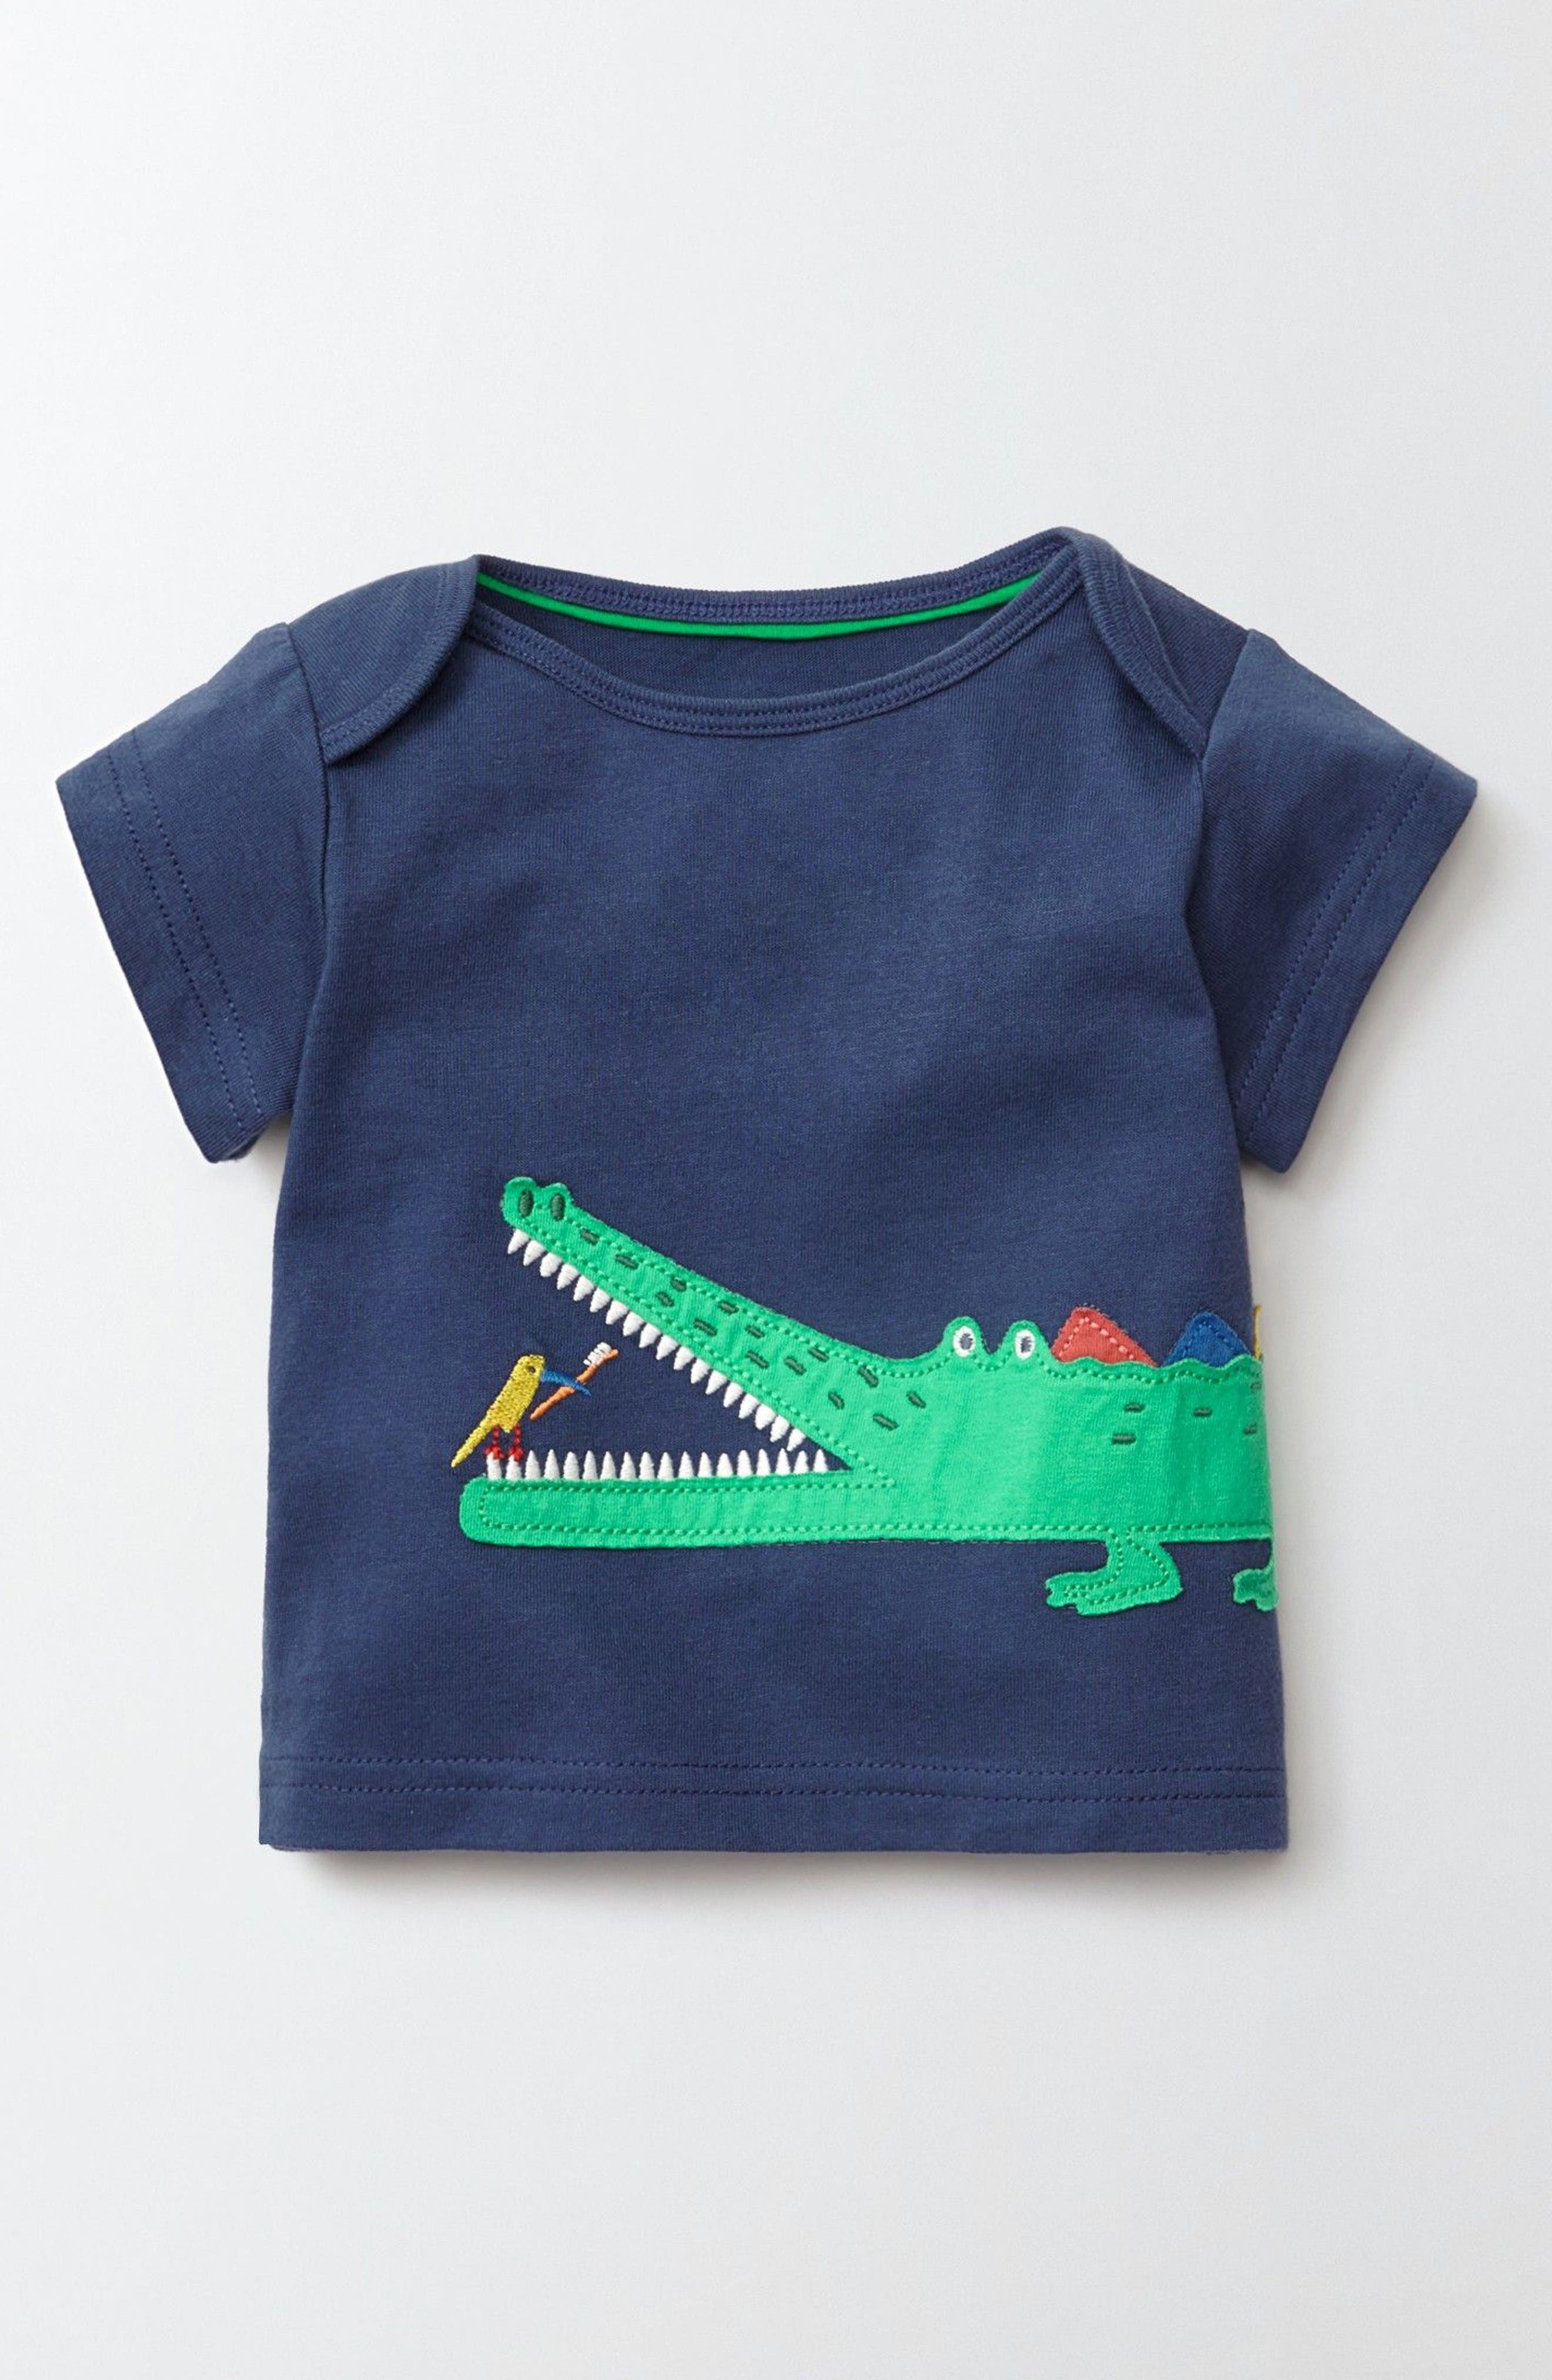 MINI BODEN Big Appliqué T-Shirt